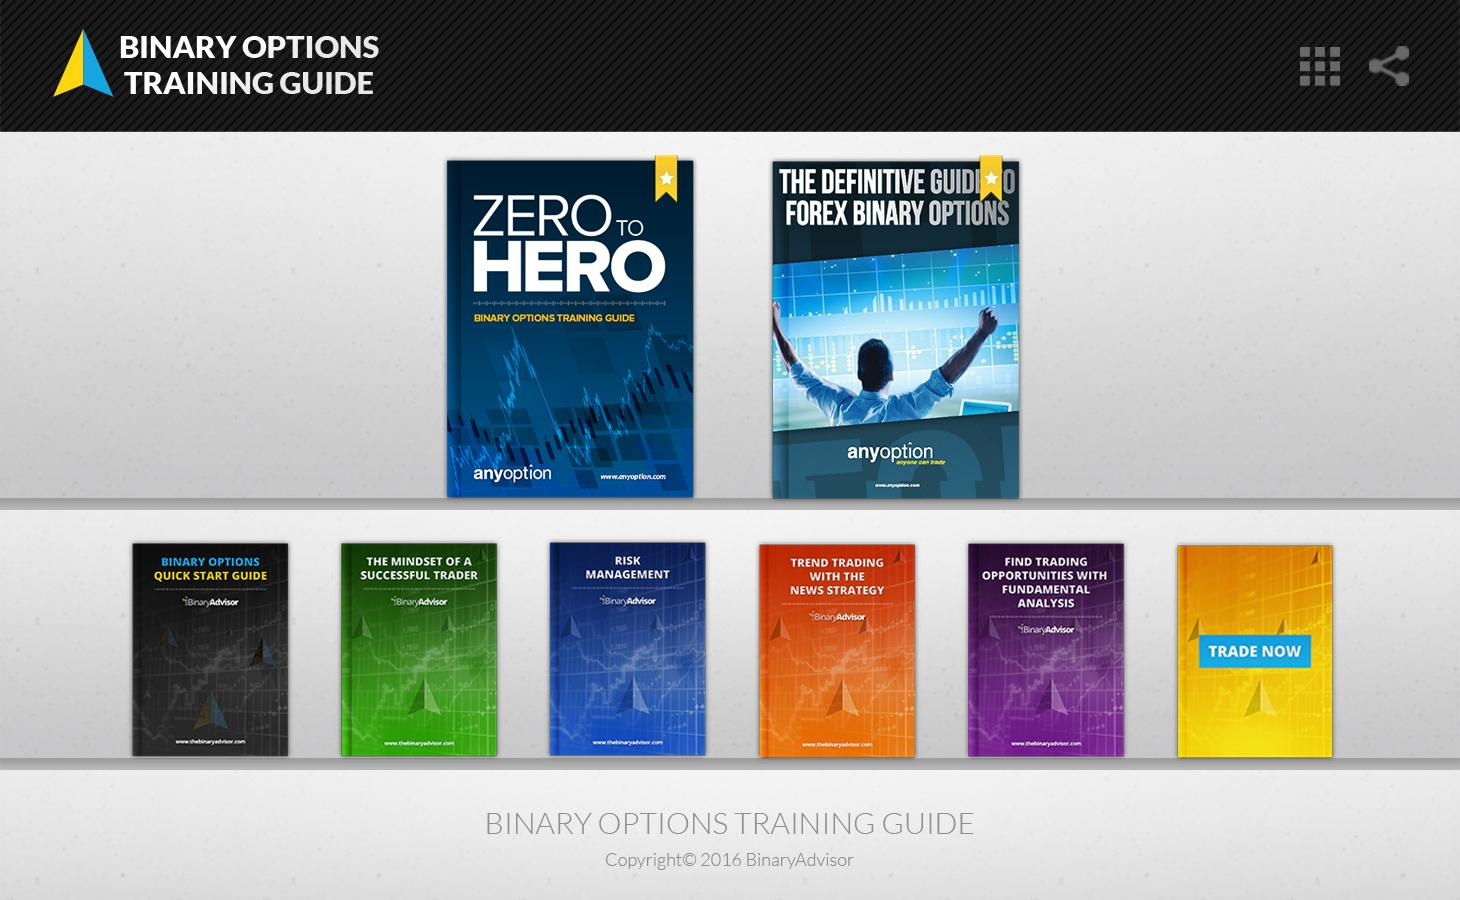 Binary options training guide